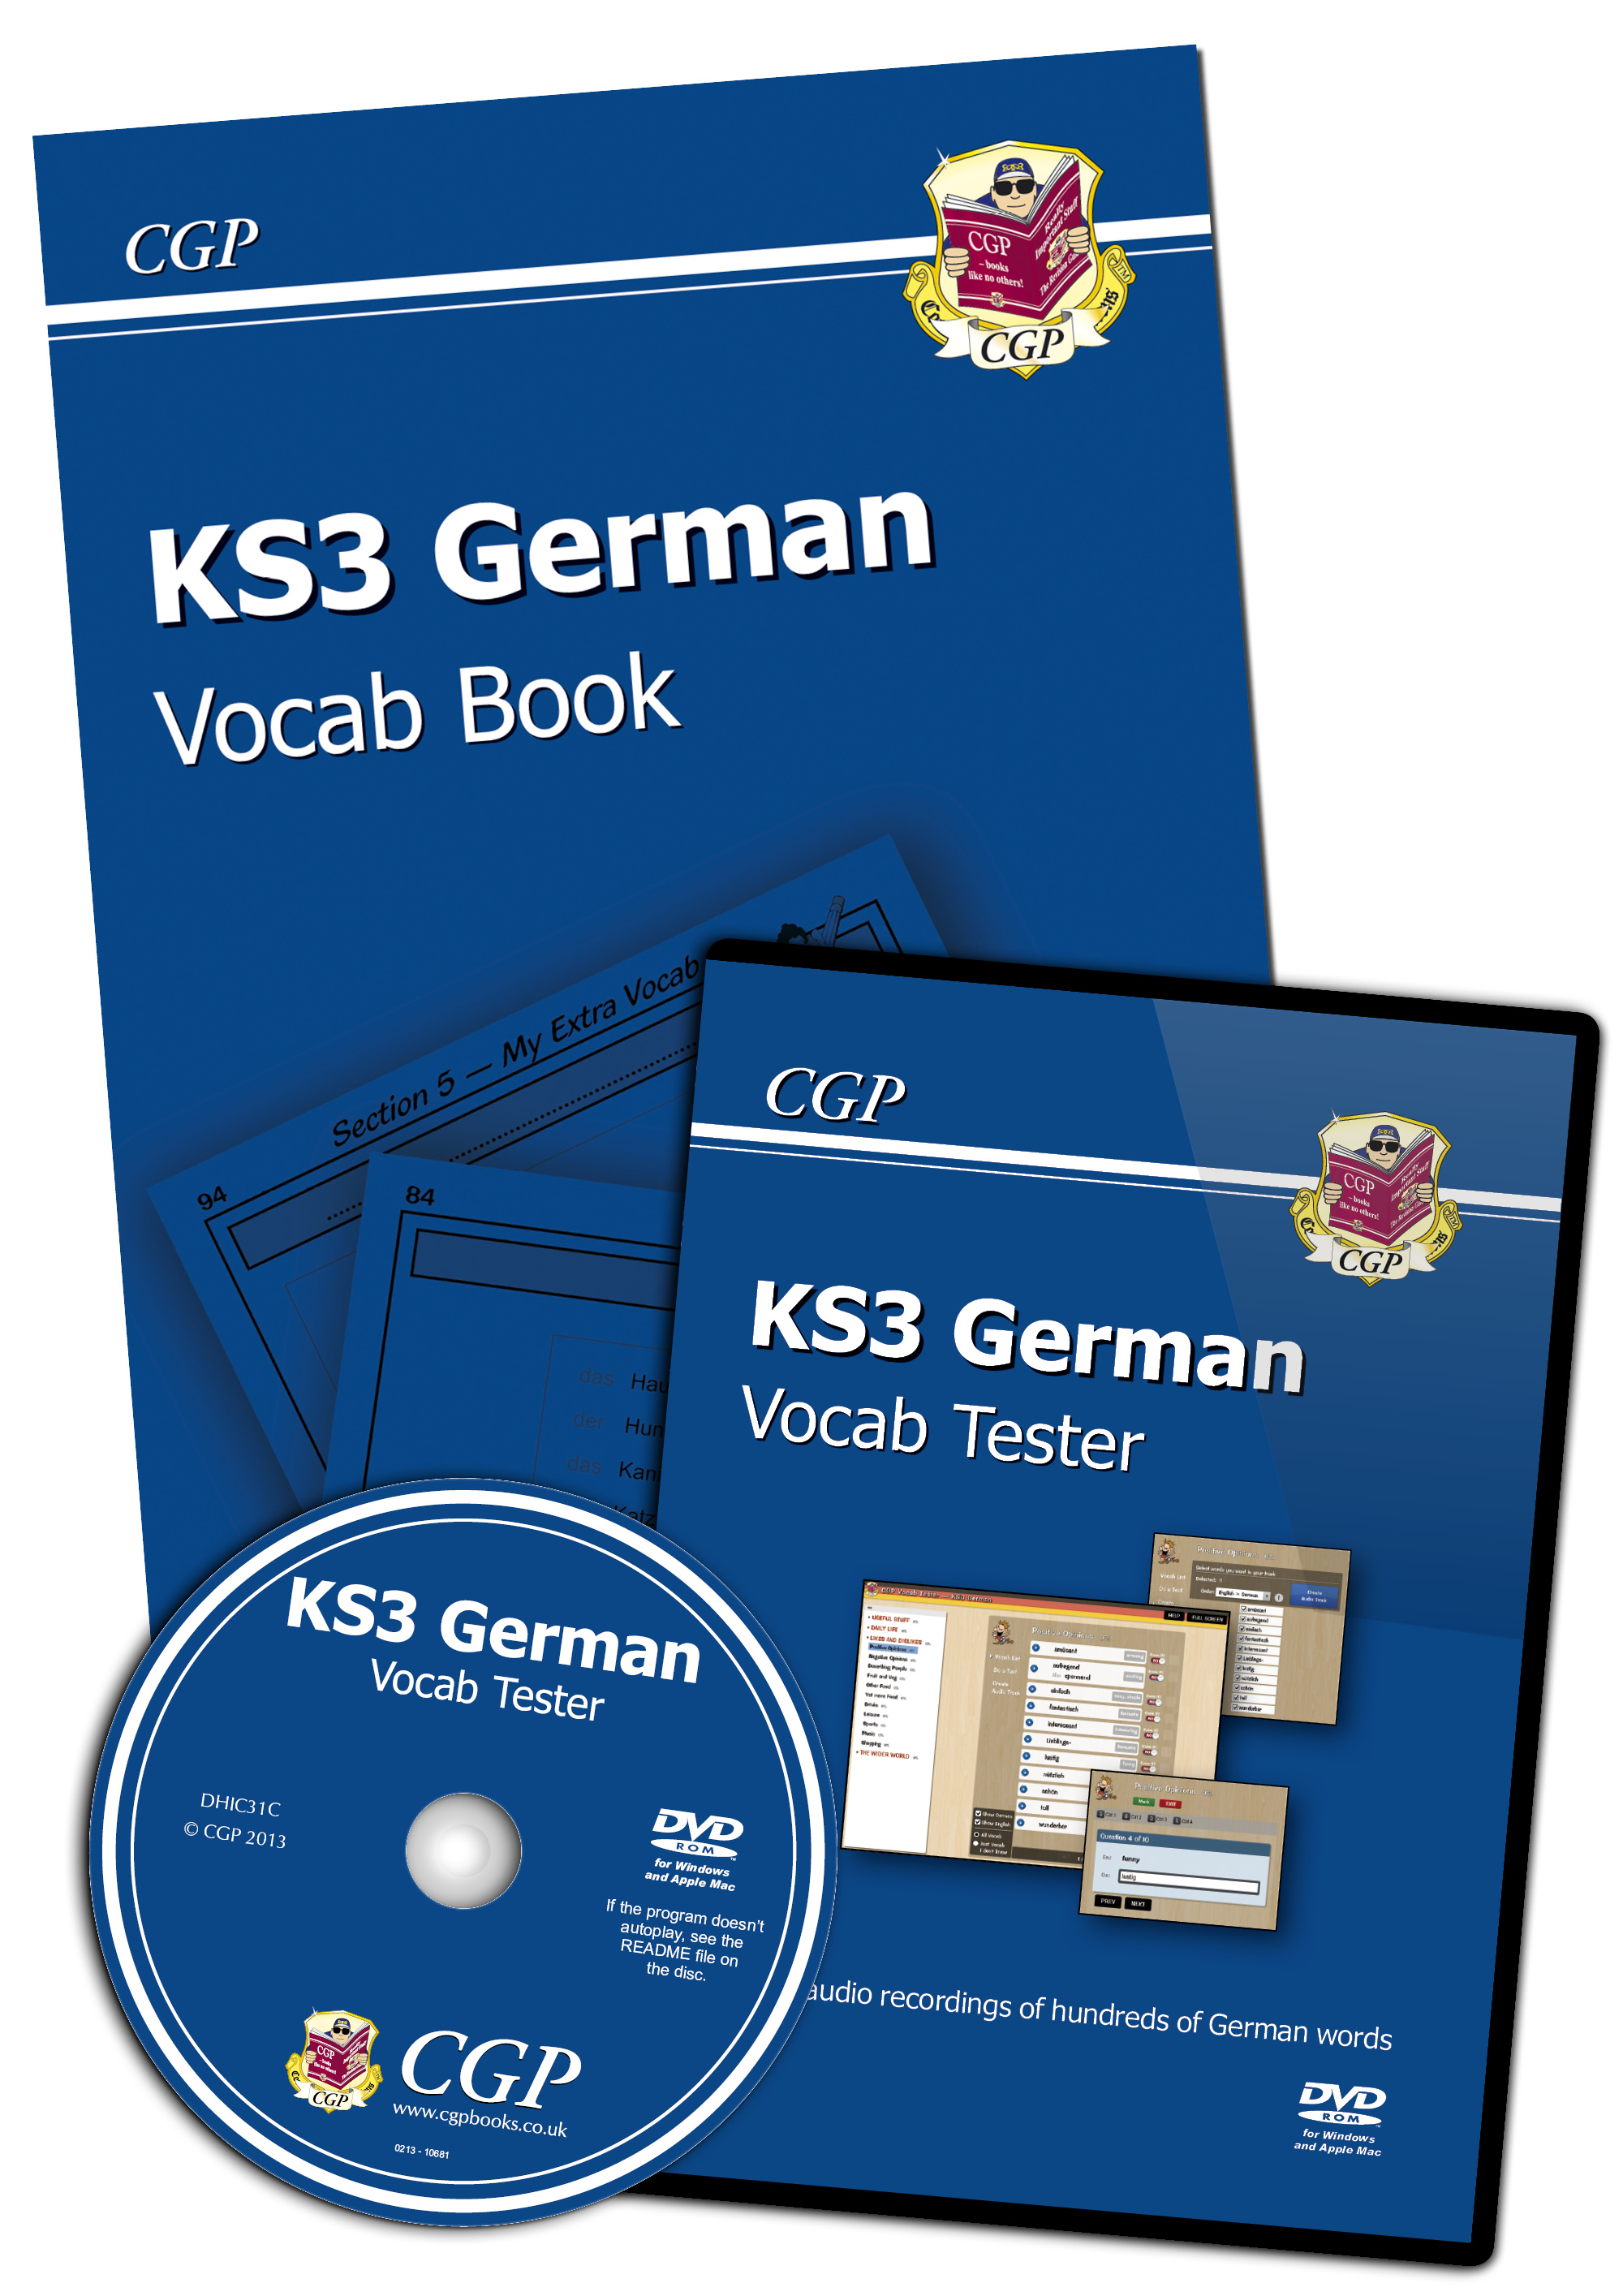 DHIC31 - KS3 German Interactive Vocab Tester - DVD-ROM and Vocab Book